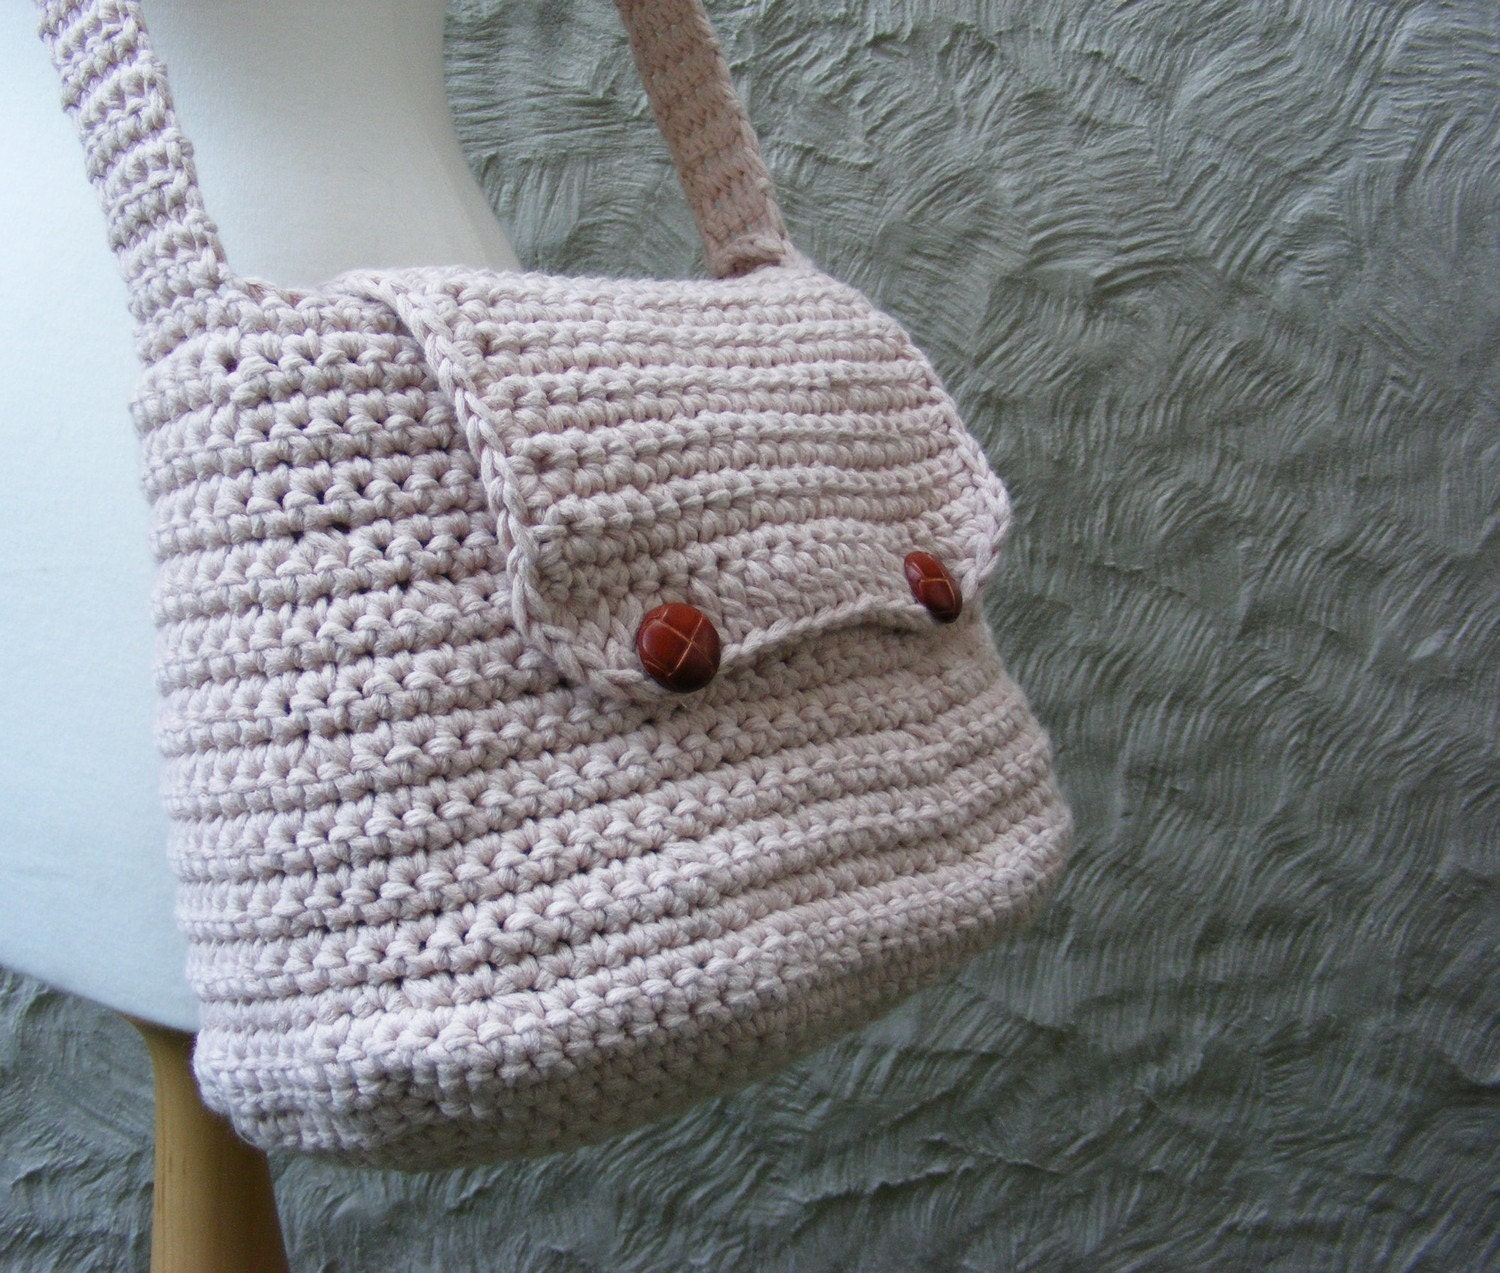 Crochet Designer Purse Patterns : Unavailable Listing on Etsy